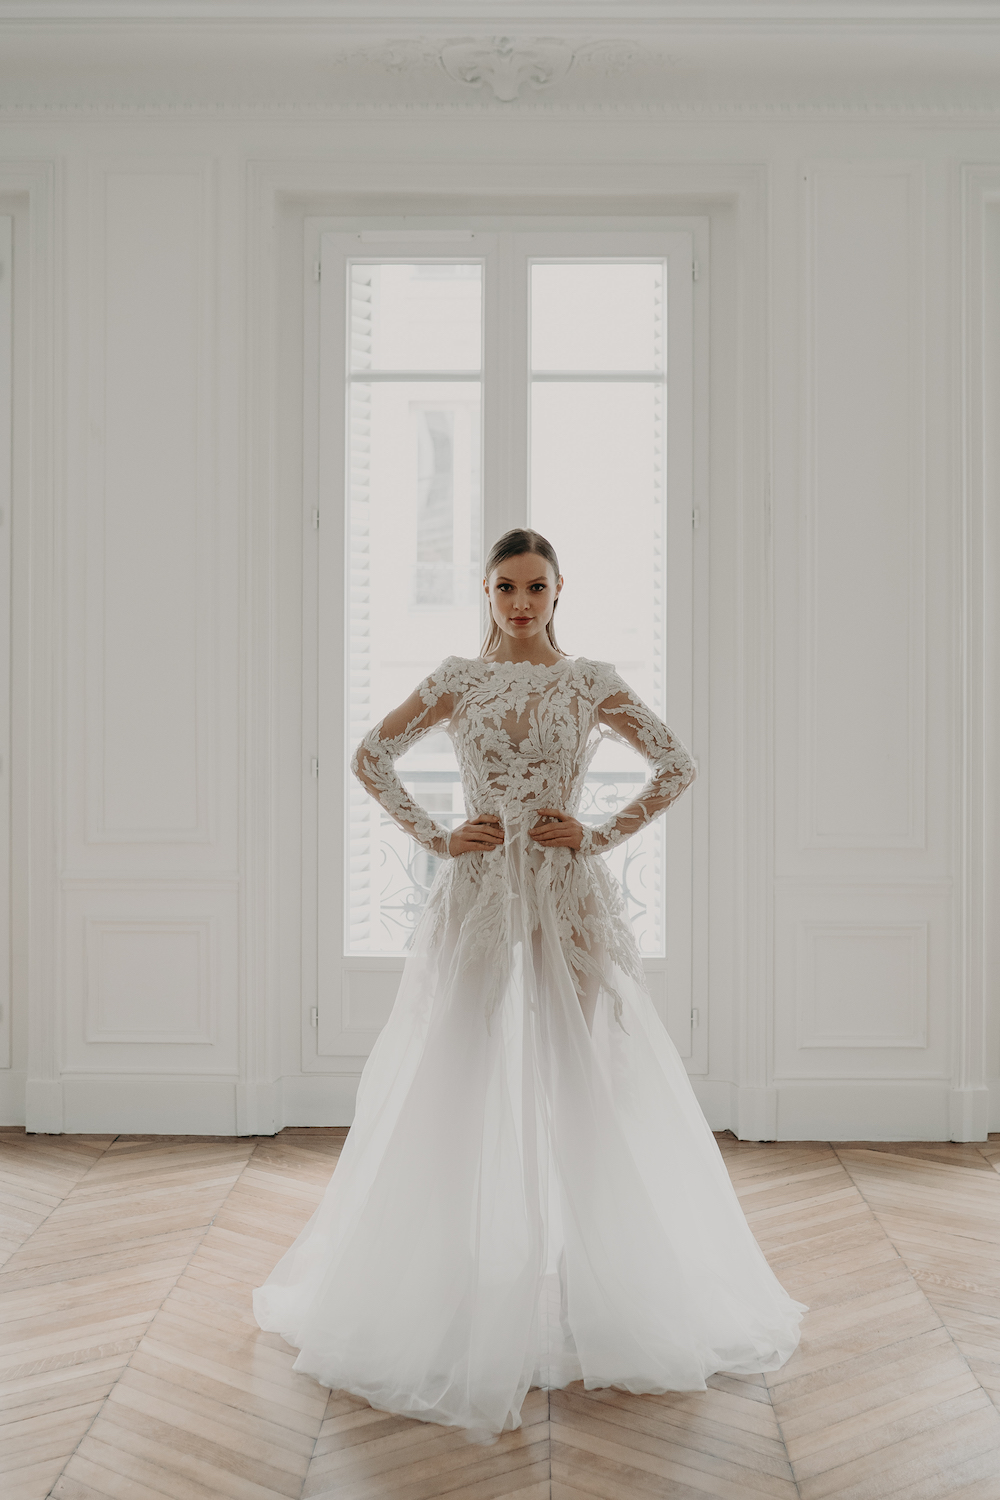 Love Find Co. Parisian Bridal Editorial featuring Mariana Hardwick